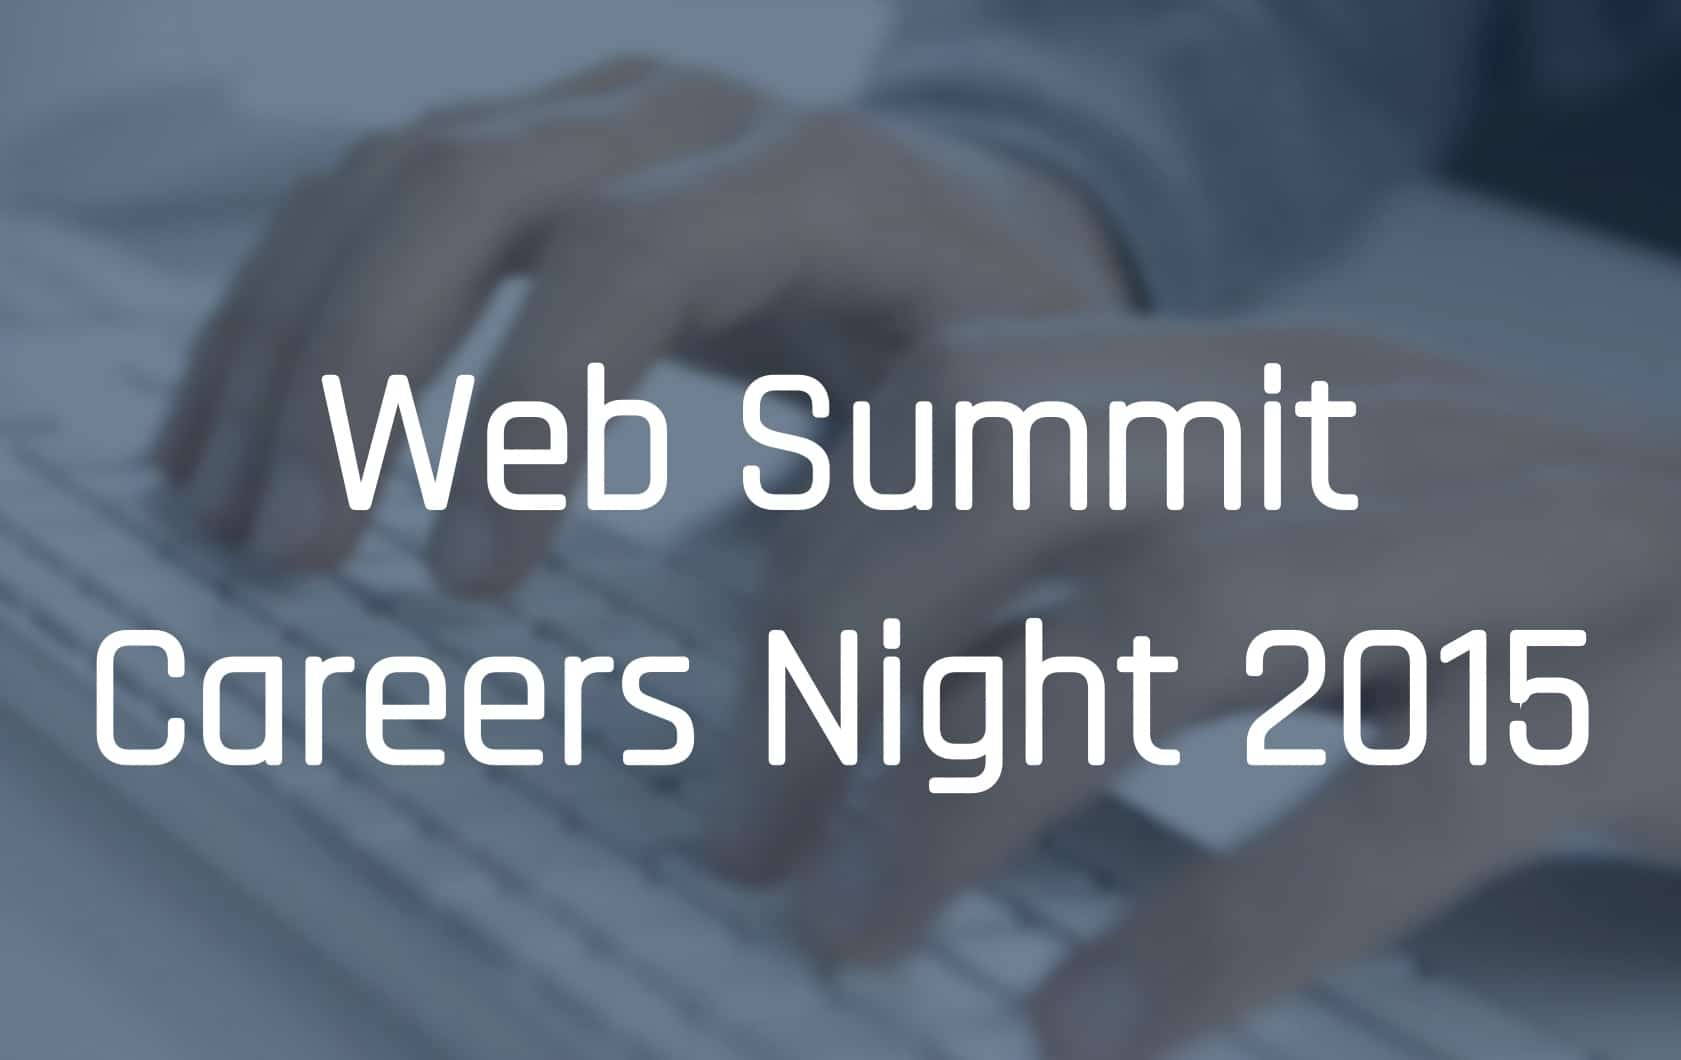 Web Summit Careers